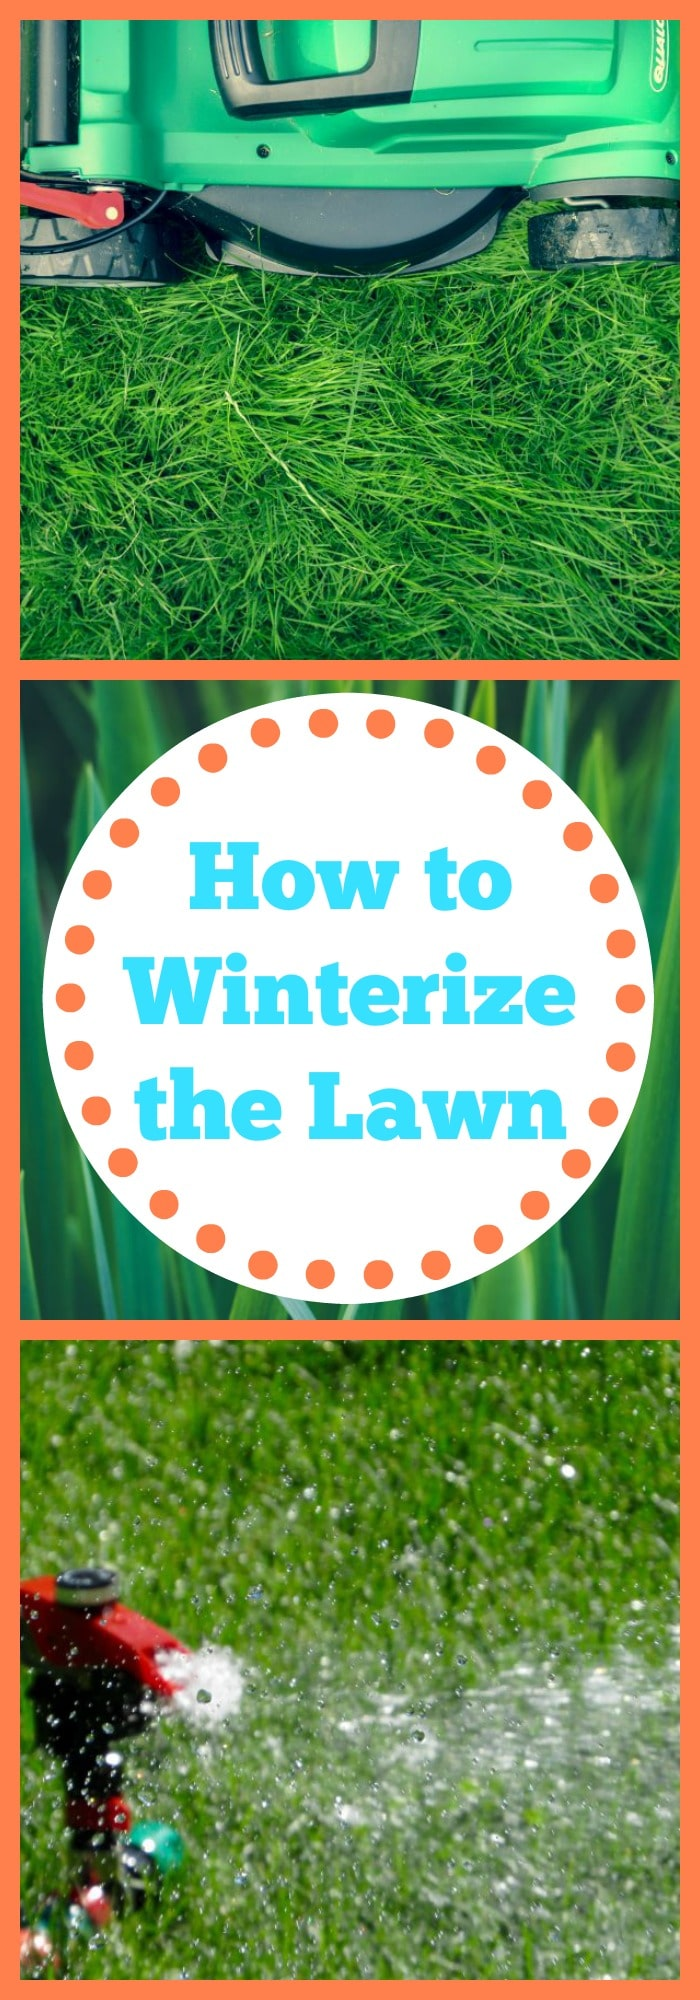 How to Winterize the Lawn